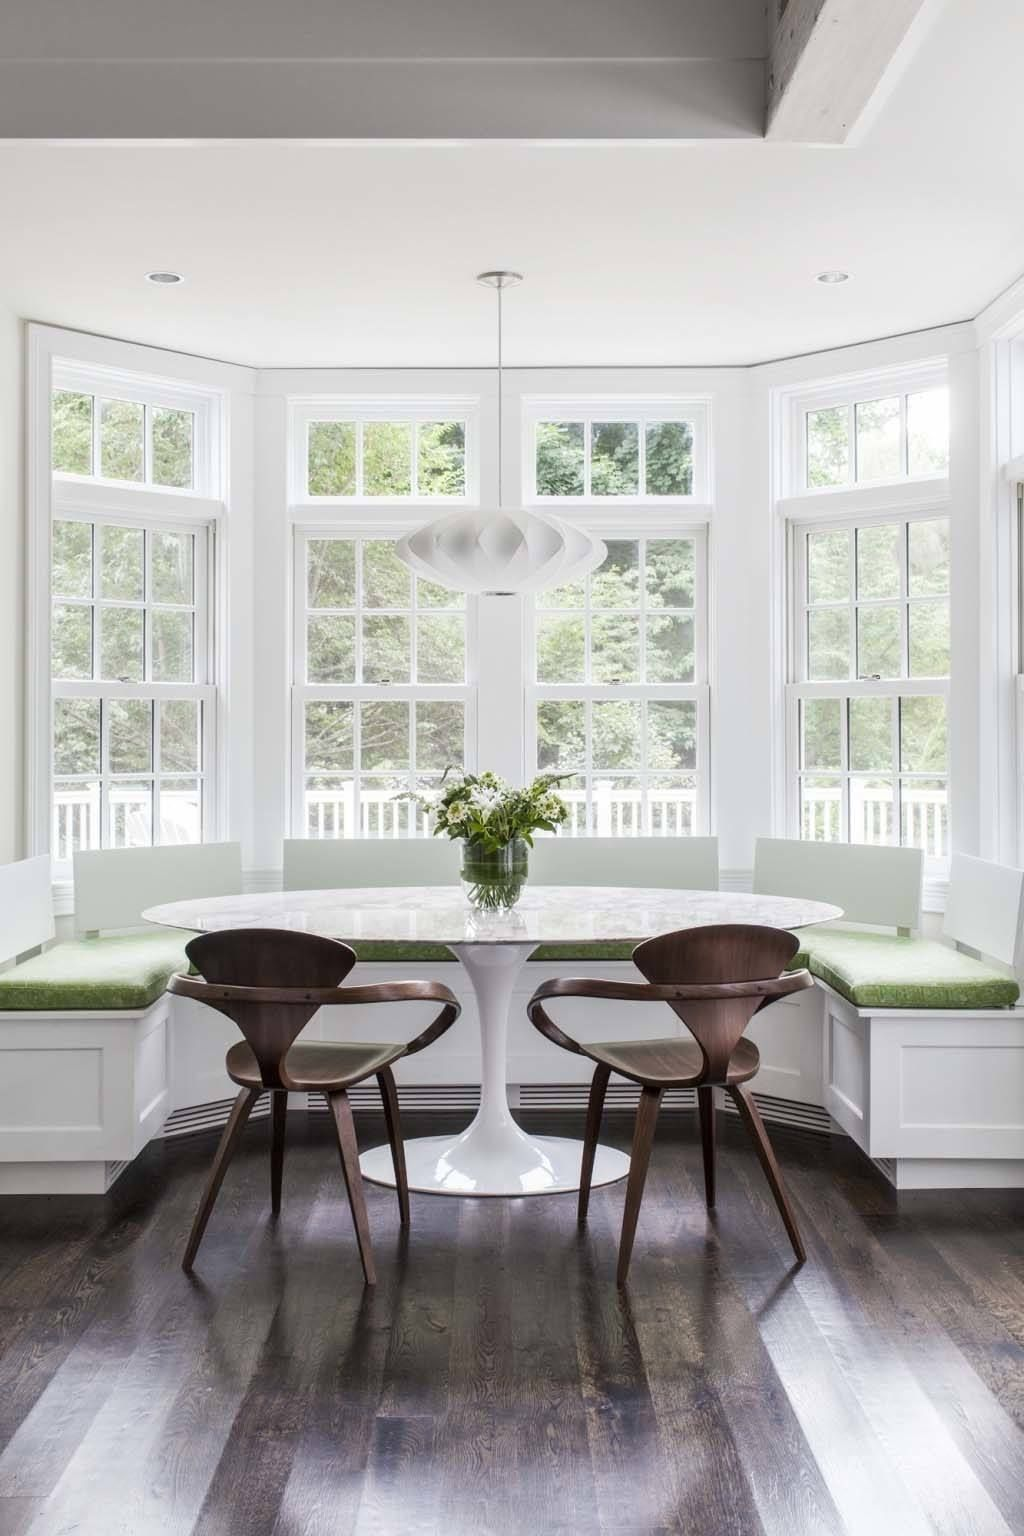 Luminous Update To Massachusetts Home Encourages Family Intimacy